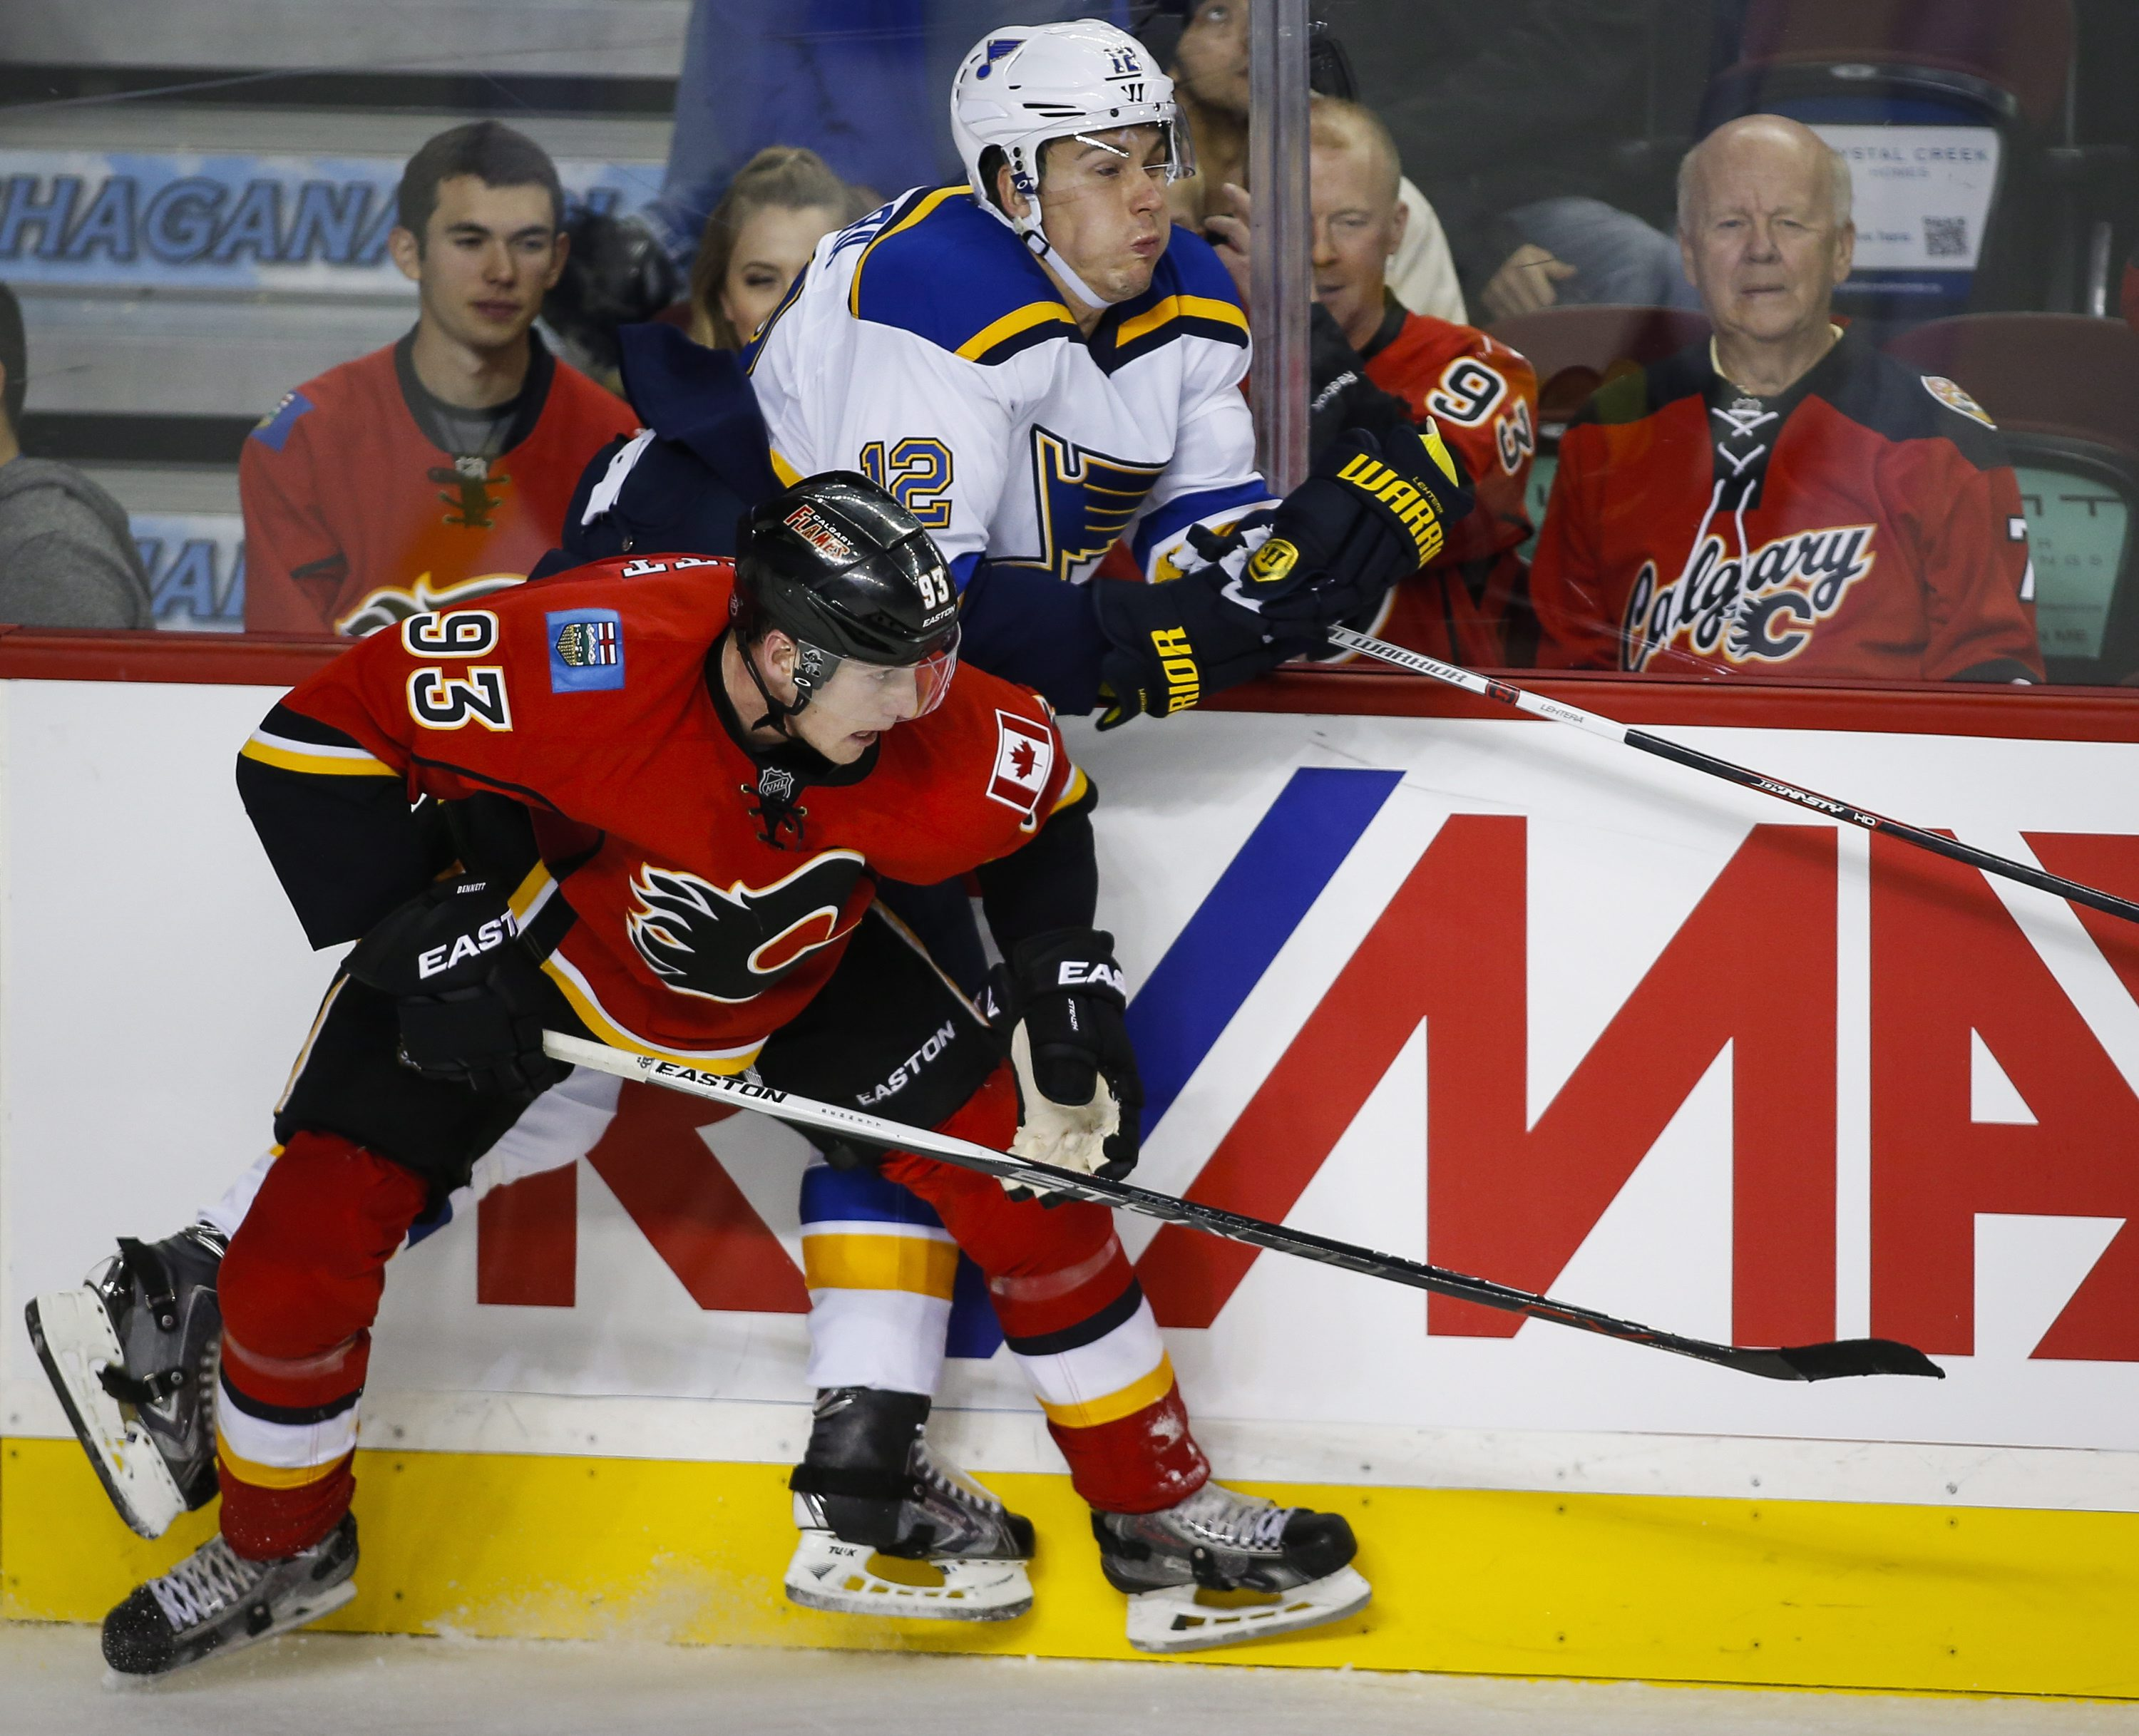 St. Louis Blues' Jori Lehtera, right, from Finland, is checked by Calgary Flames' Sam Bennett during the third period of an NHL hockey game Tuesday, Oct. 13, 2015, in Calgary, Alberta. (Jeff McIntosh/The Canadian Press via AP) MANDATORY CREDIT